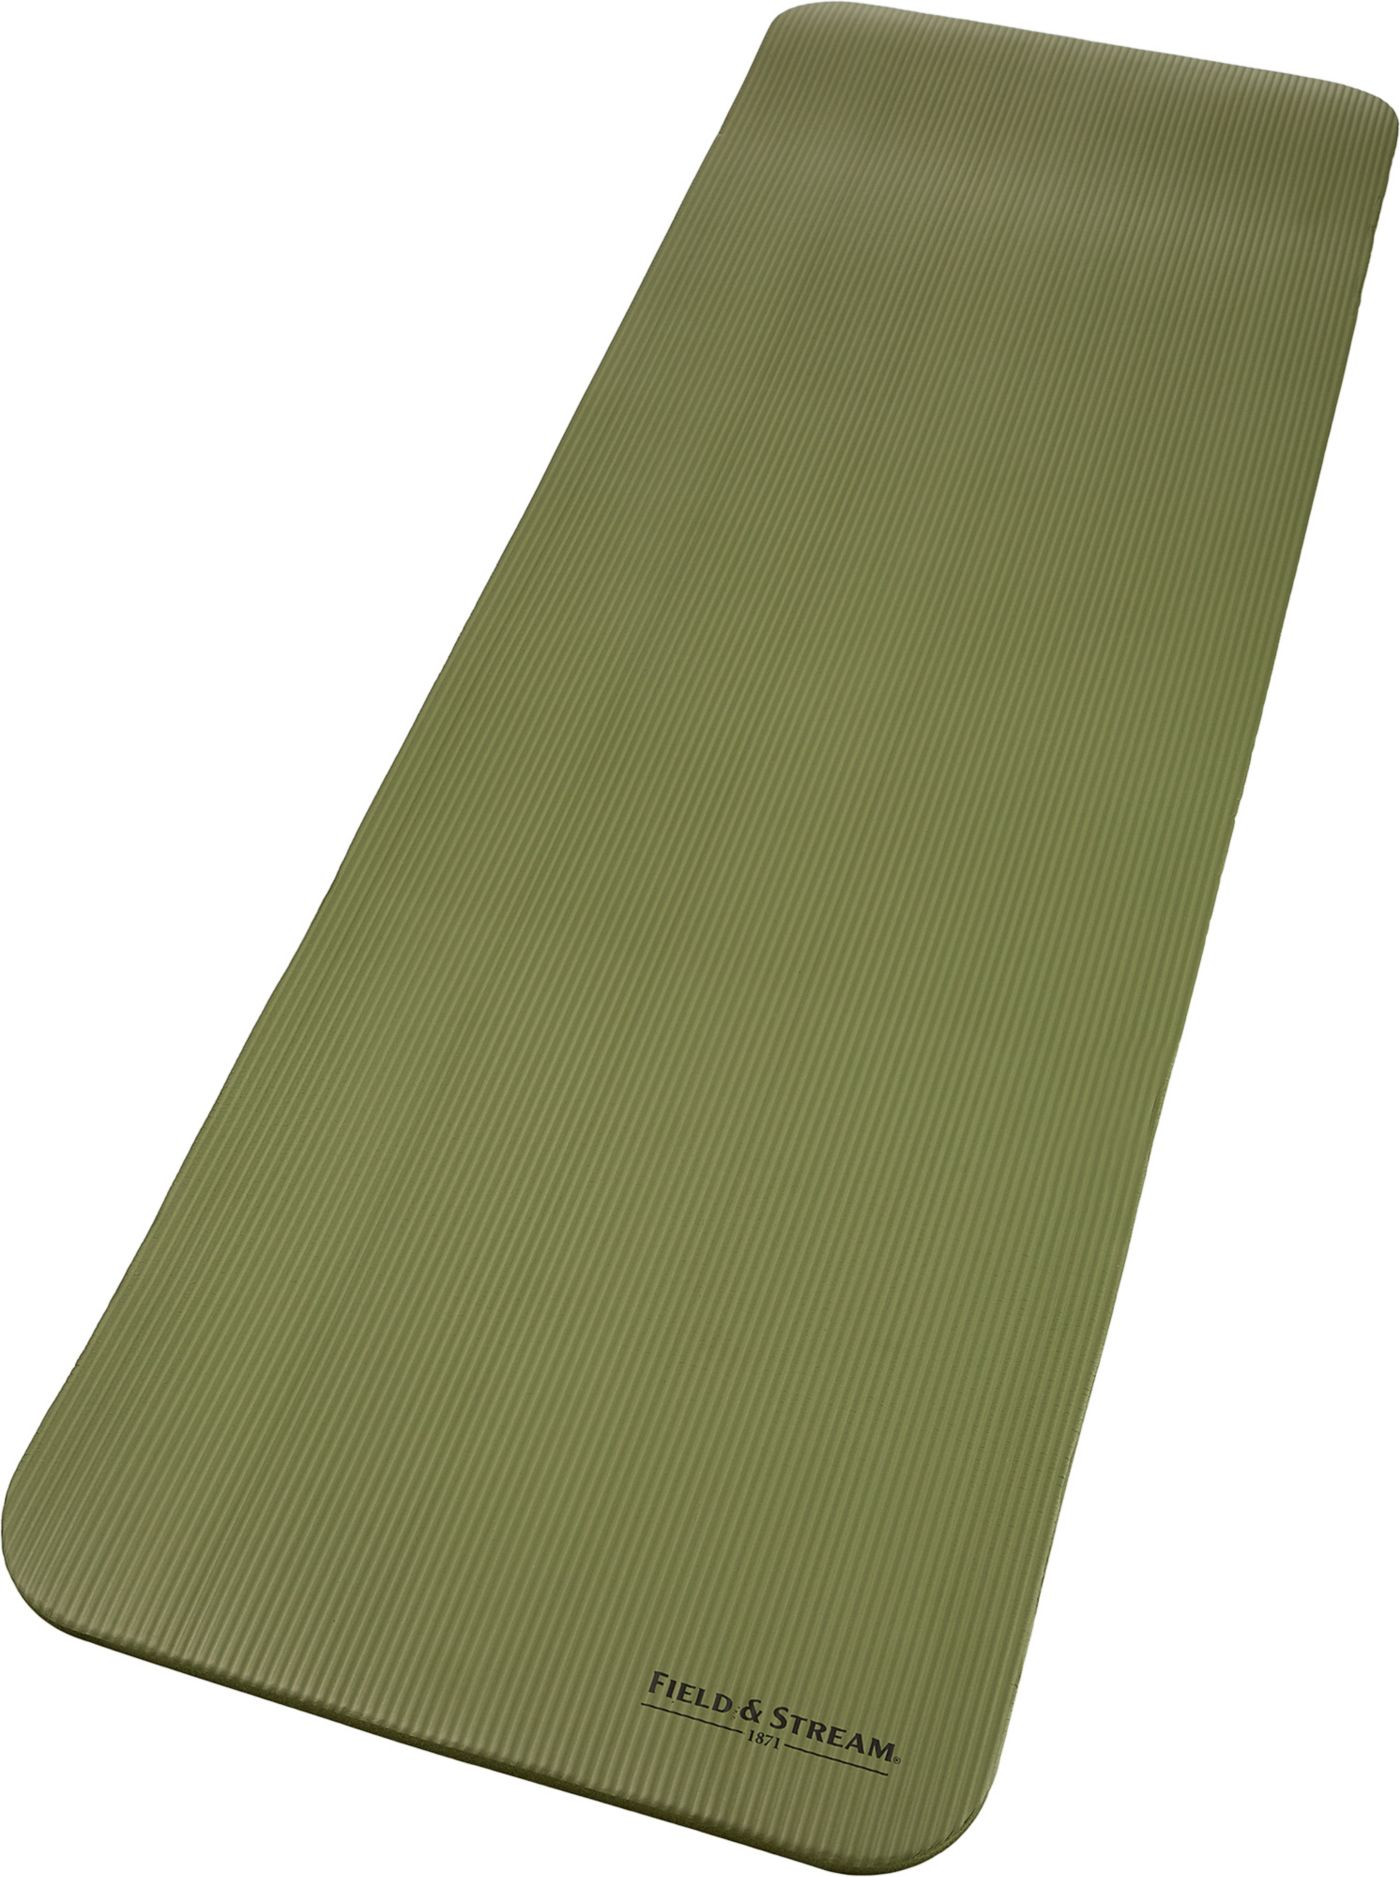 Field and Stream Ultra Comfort Camp Pad